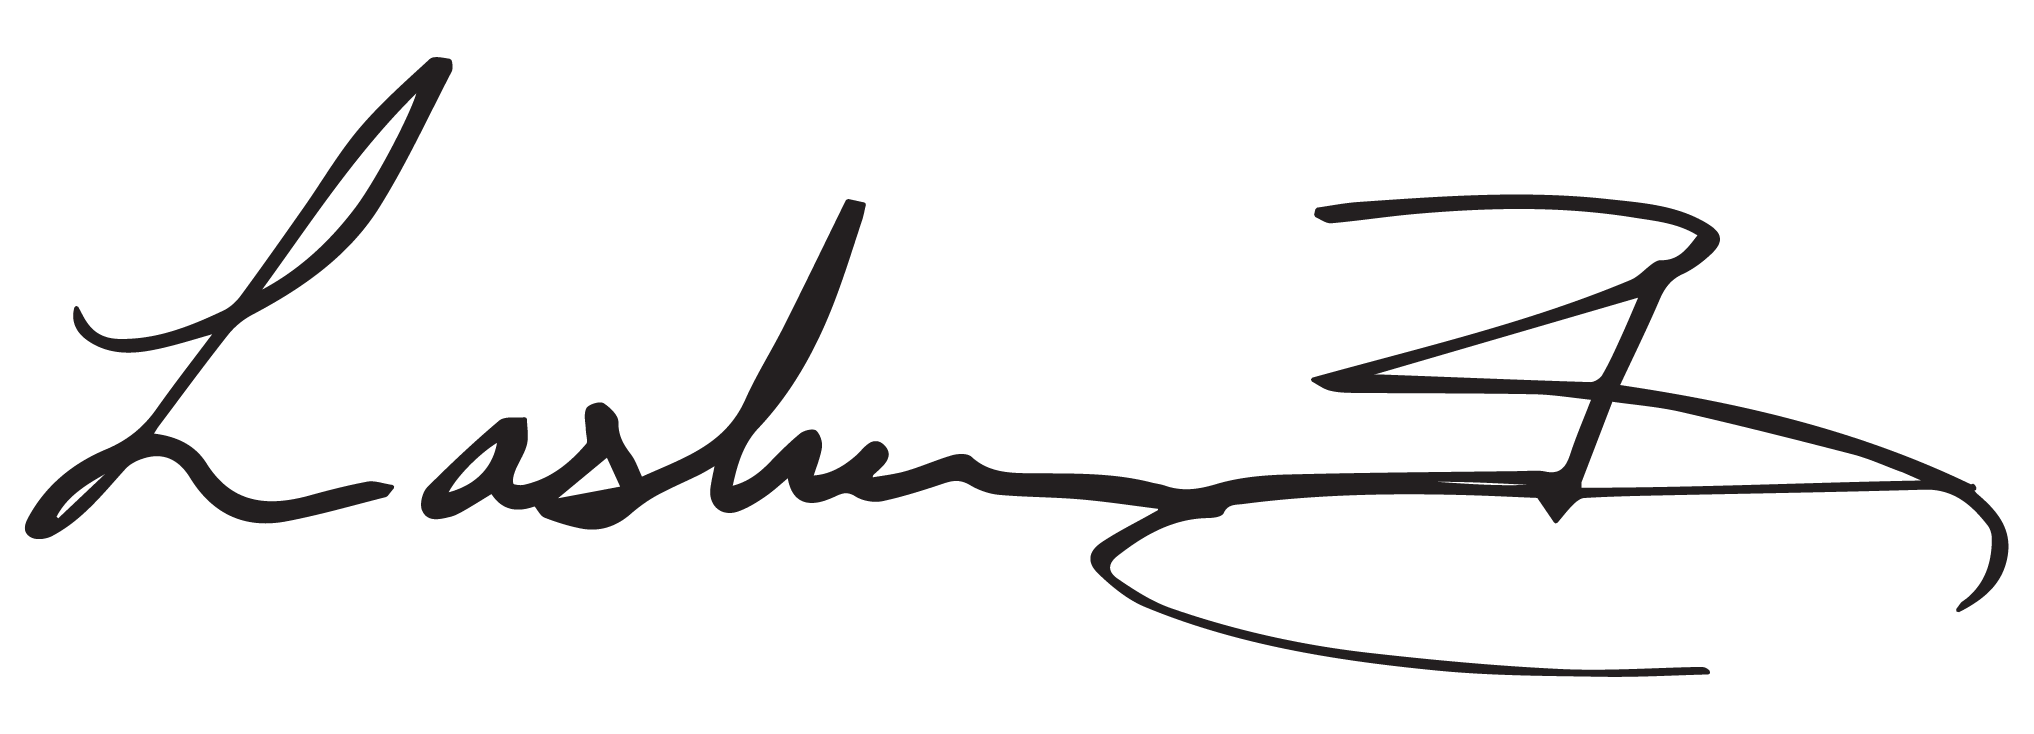 first_lady_signature-02.png